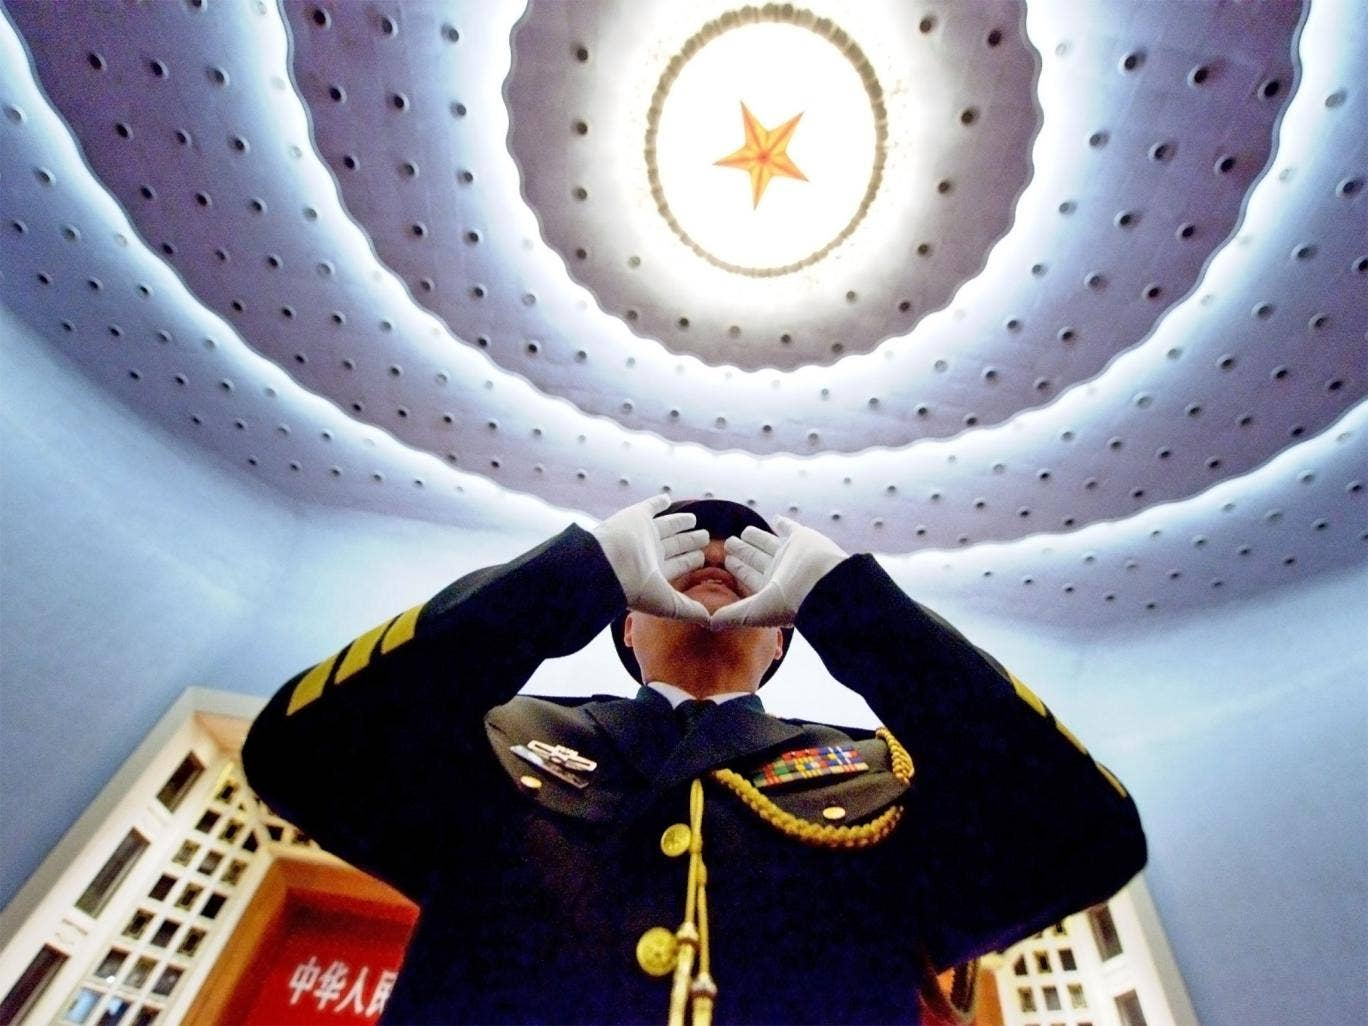 Top brass: an officer in the Chinese People's Liberation Army practises to conduct the military band before the opening session of the 12th National People's Congress in Beijing